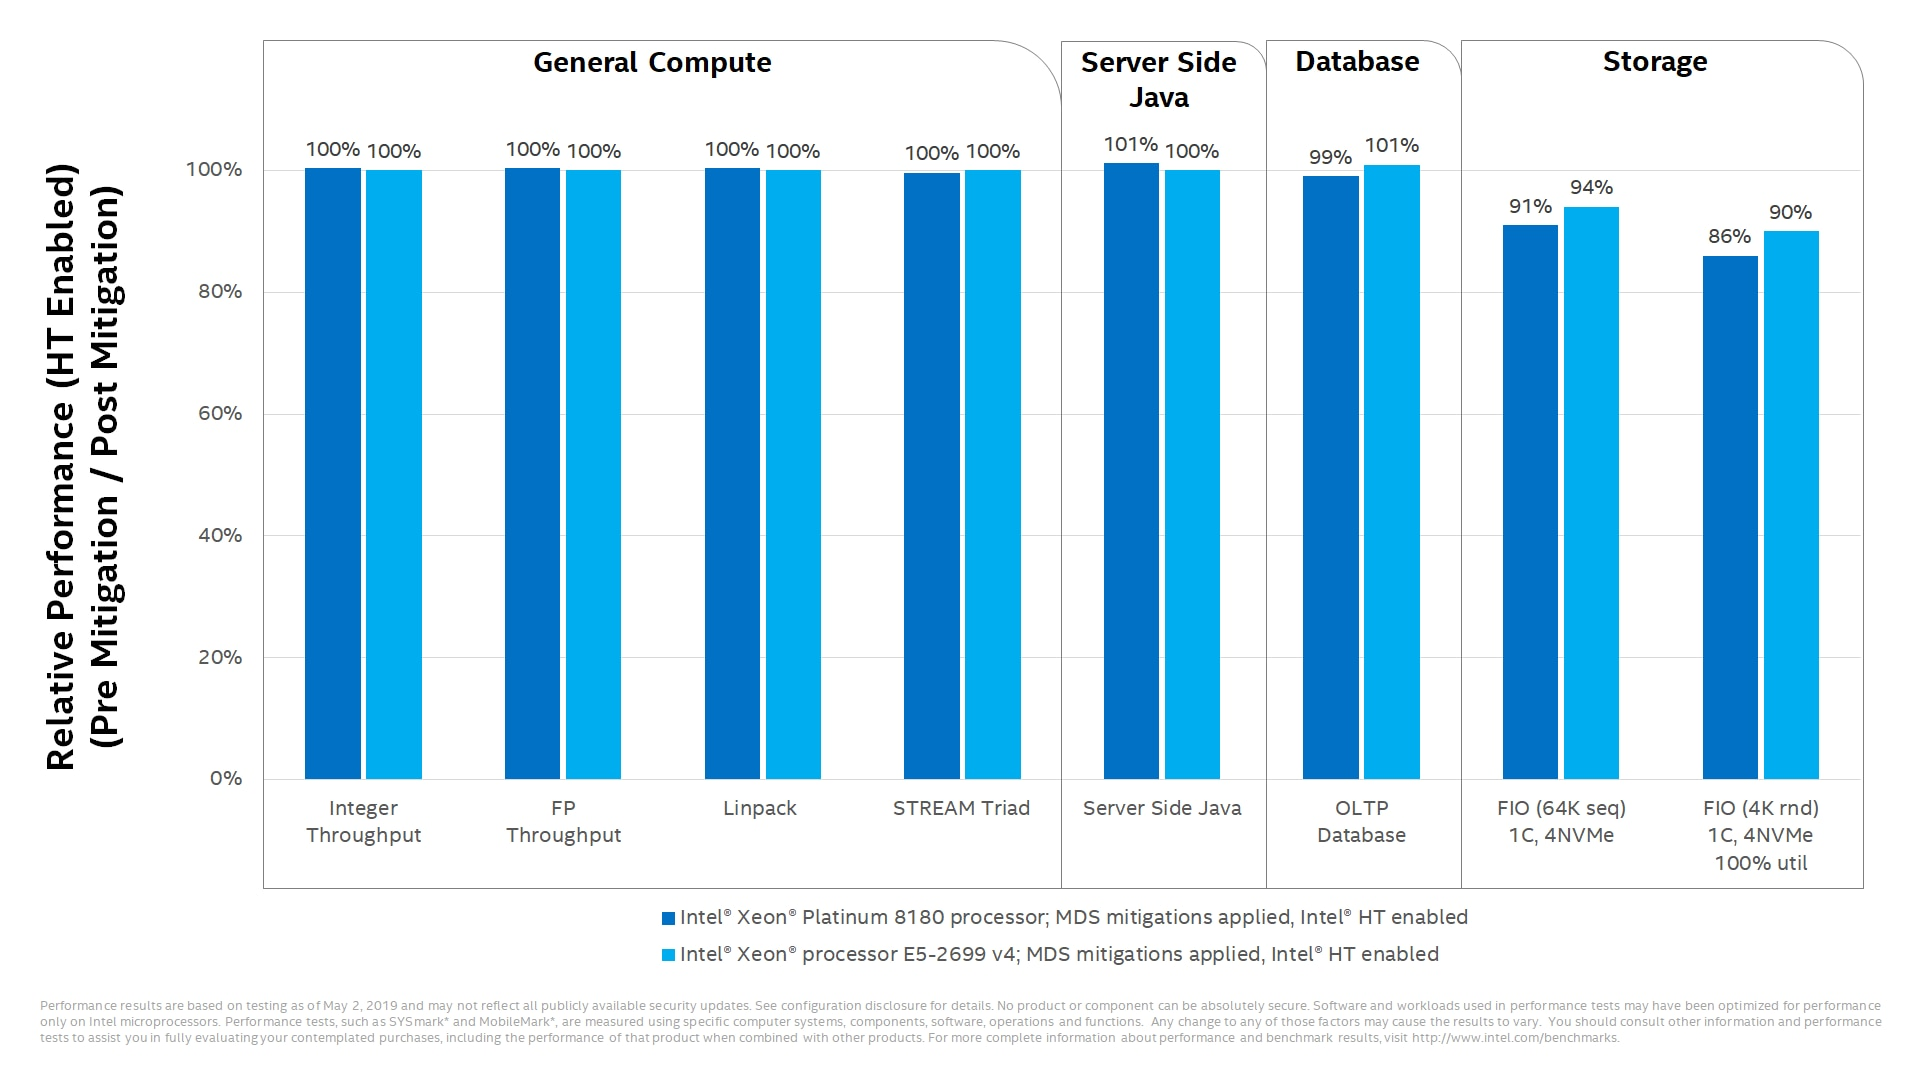 Some performance impact to select data center workloads